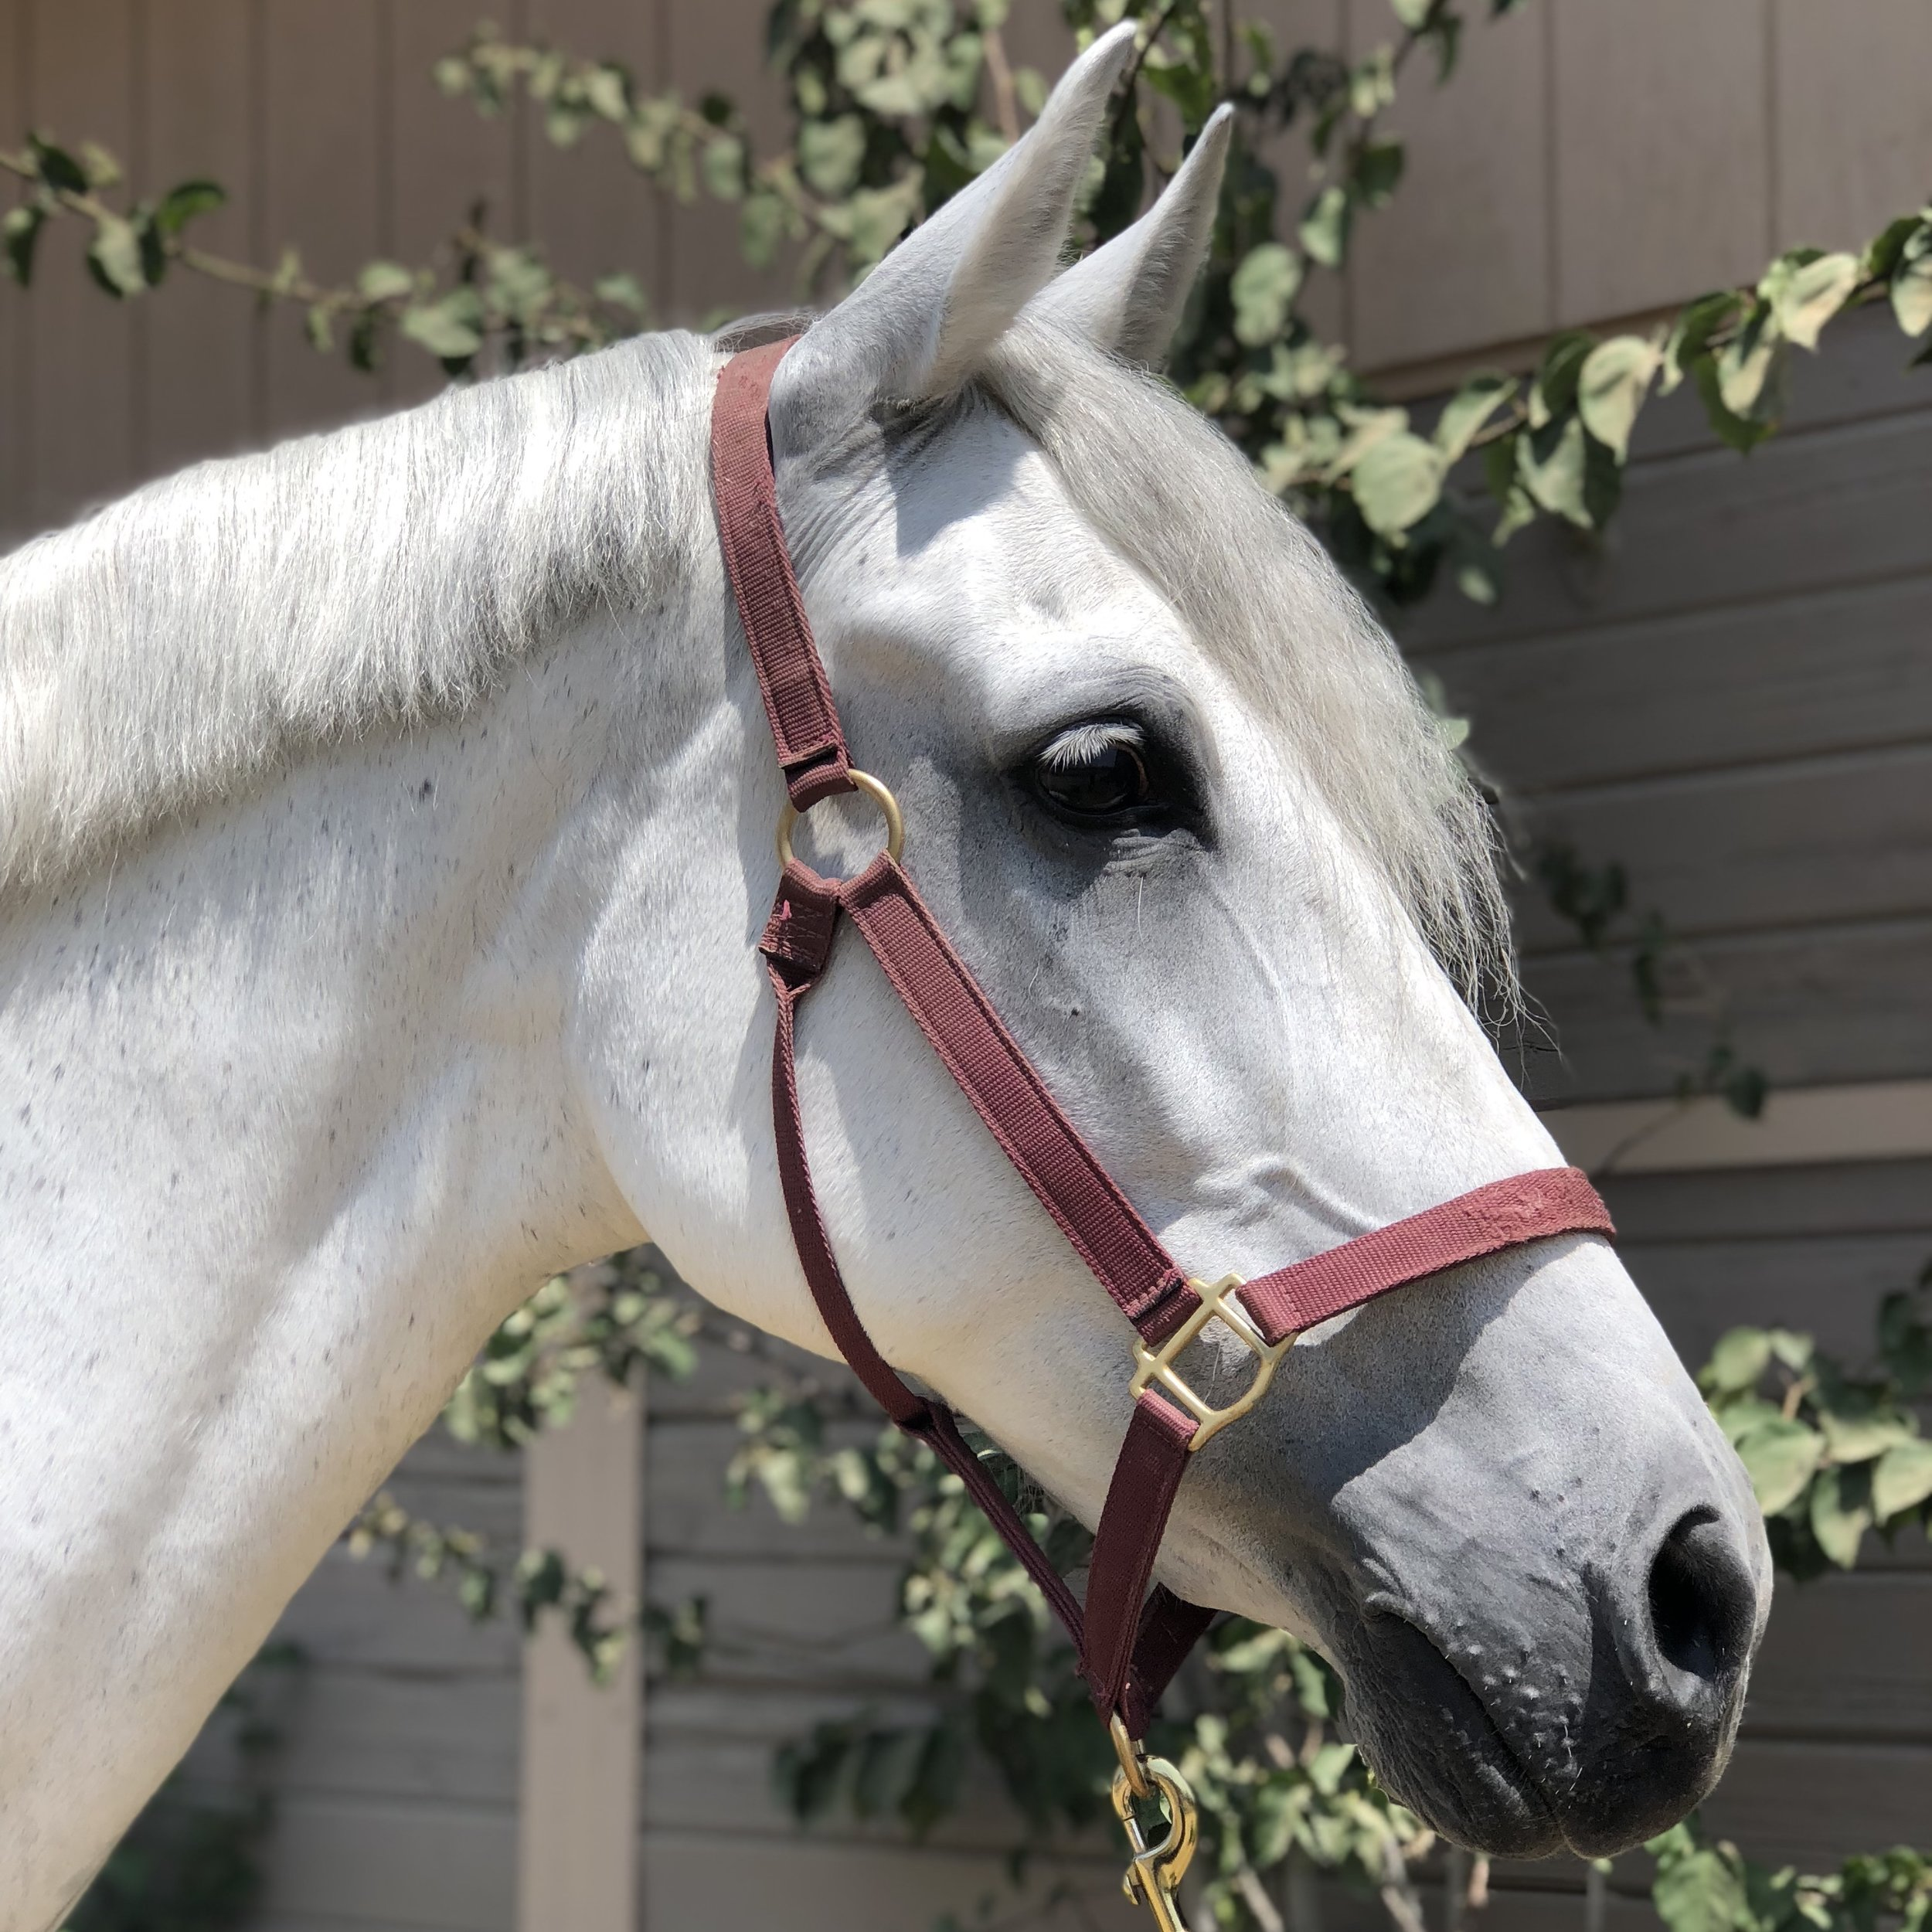 Oso Andy - Half-Andalusian gelding owned by Mindy Rennacker. Bred by Tim Keeling.